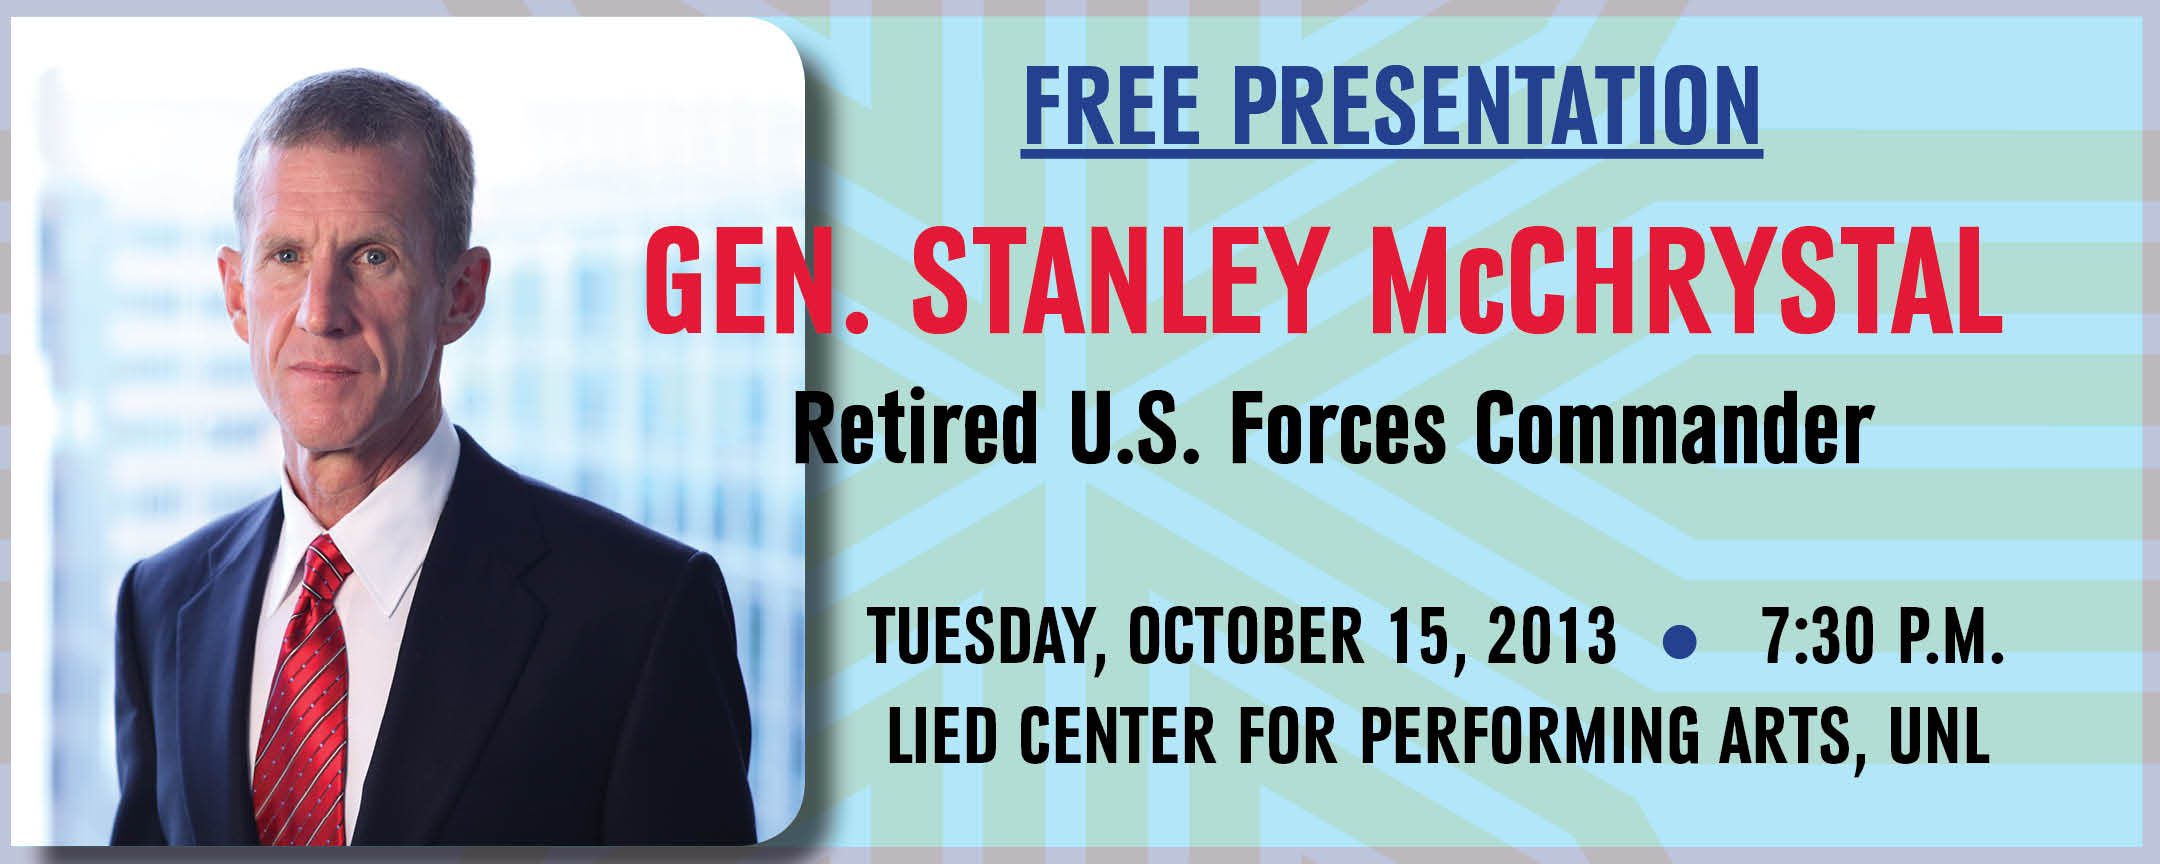 Gen. Stanley McChrystal speaks Tuesday, Oct. 15 at 7:30 p.m. - a free presentation at Lincon's Lied Center